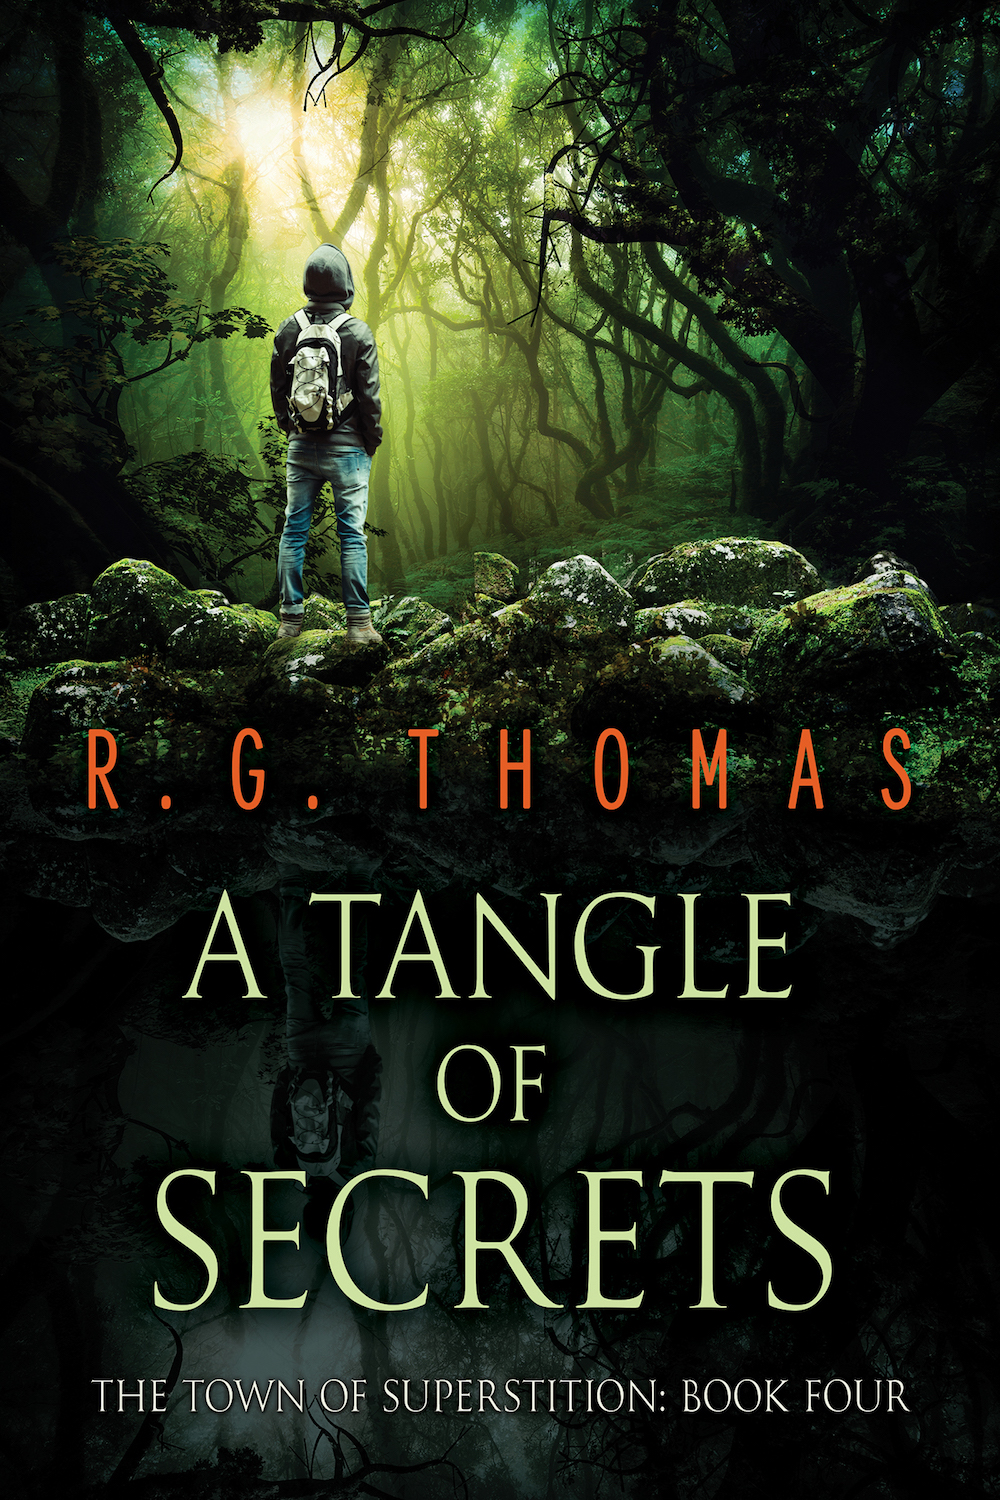 A Tangle of Secrets Book Cover